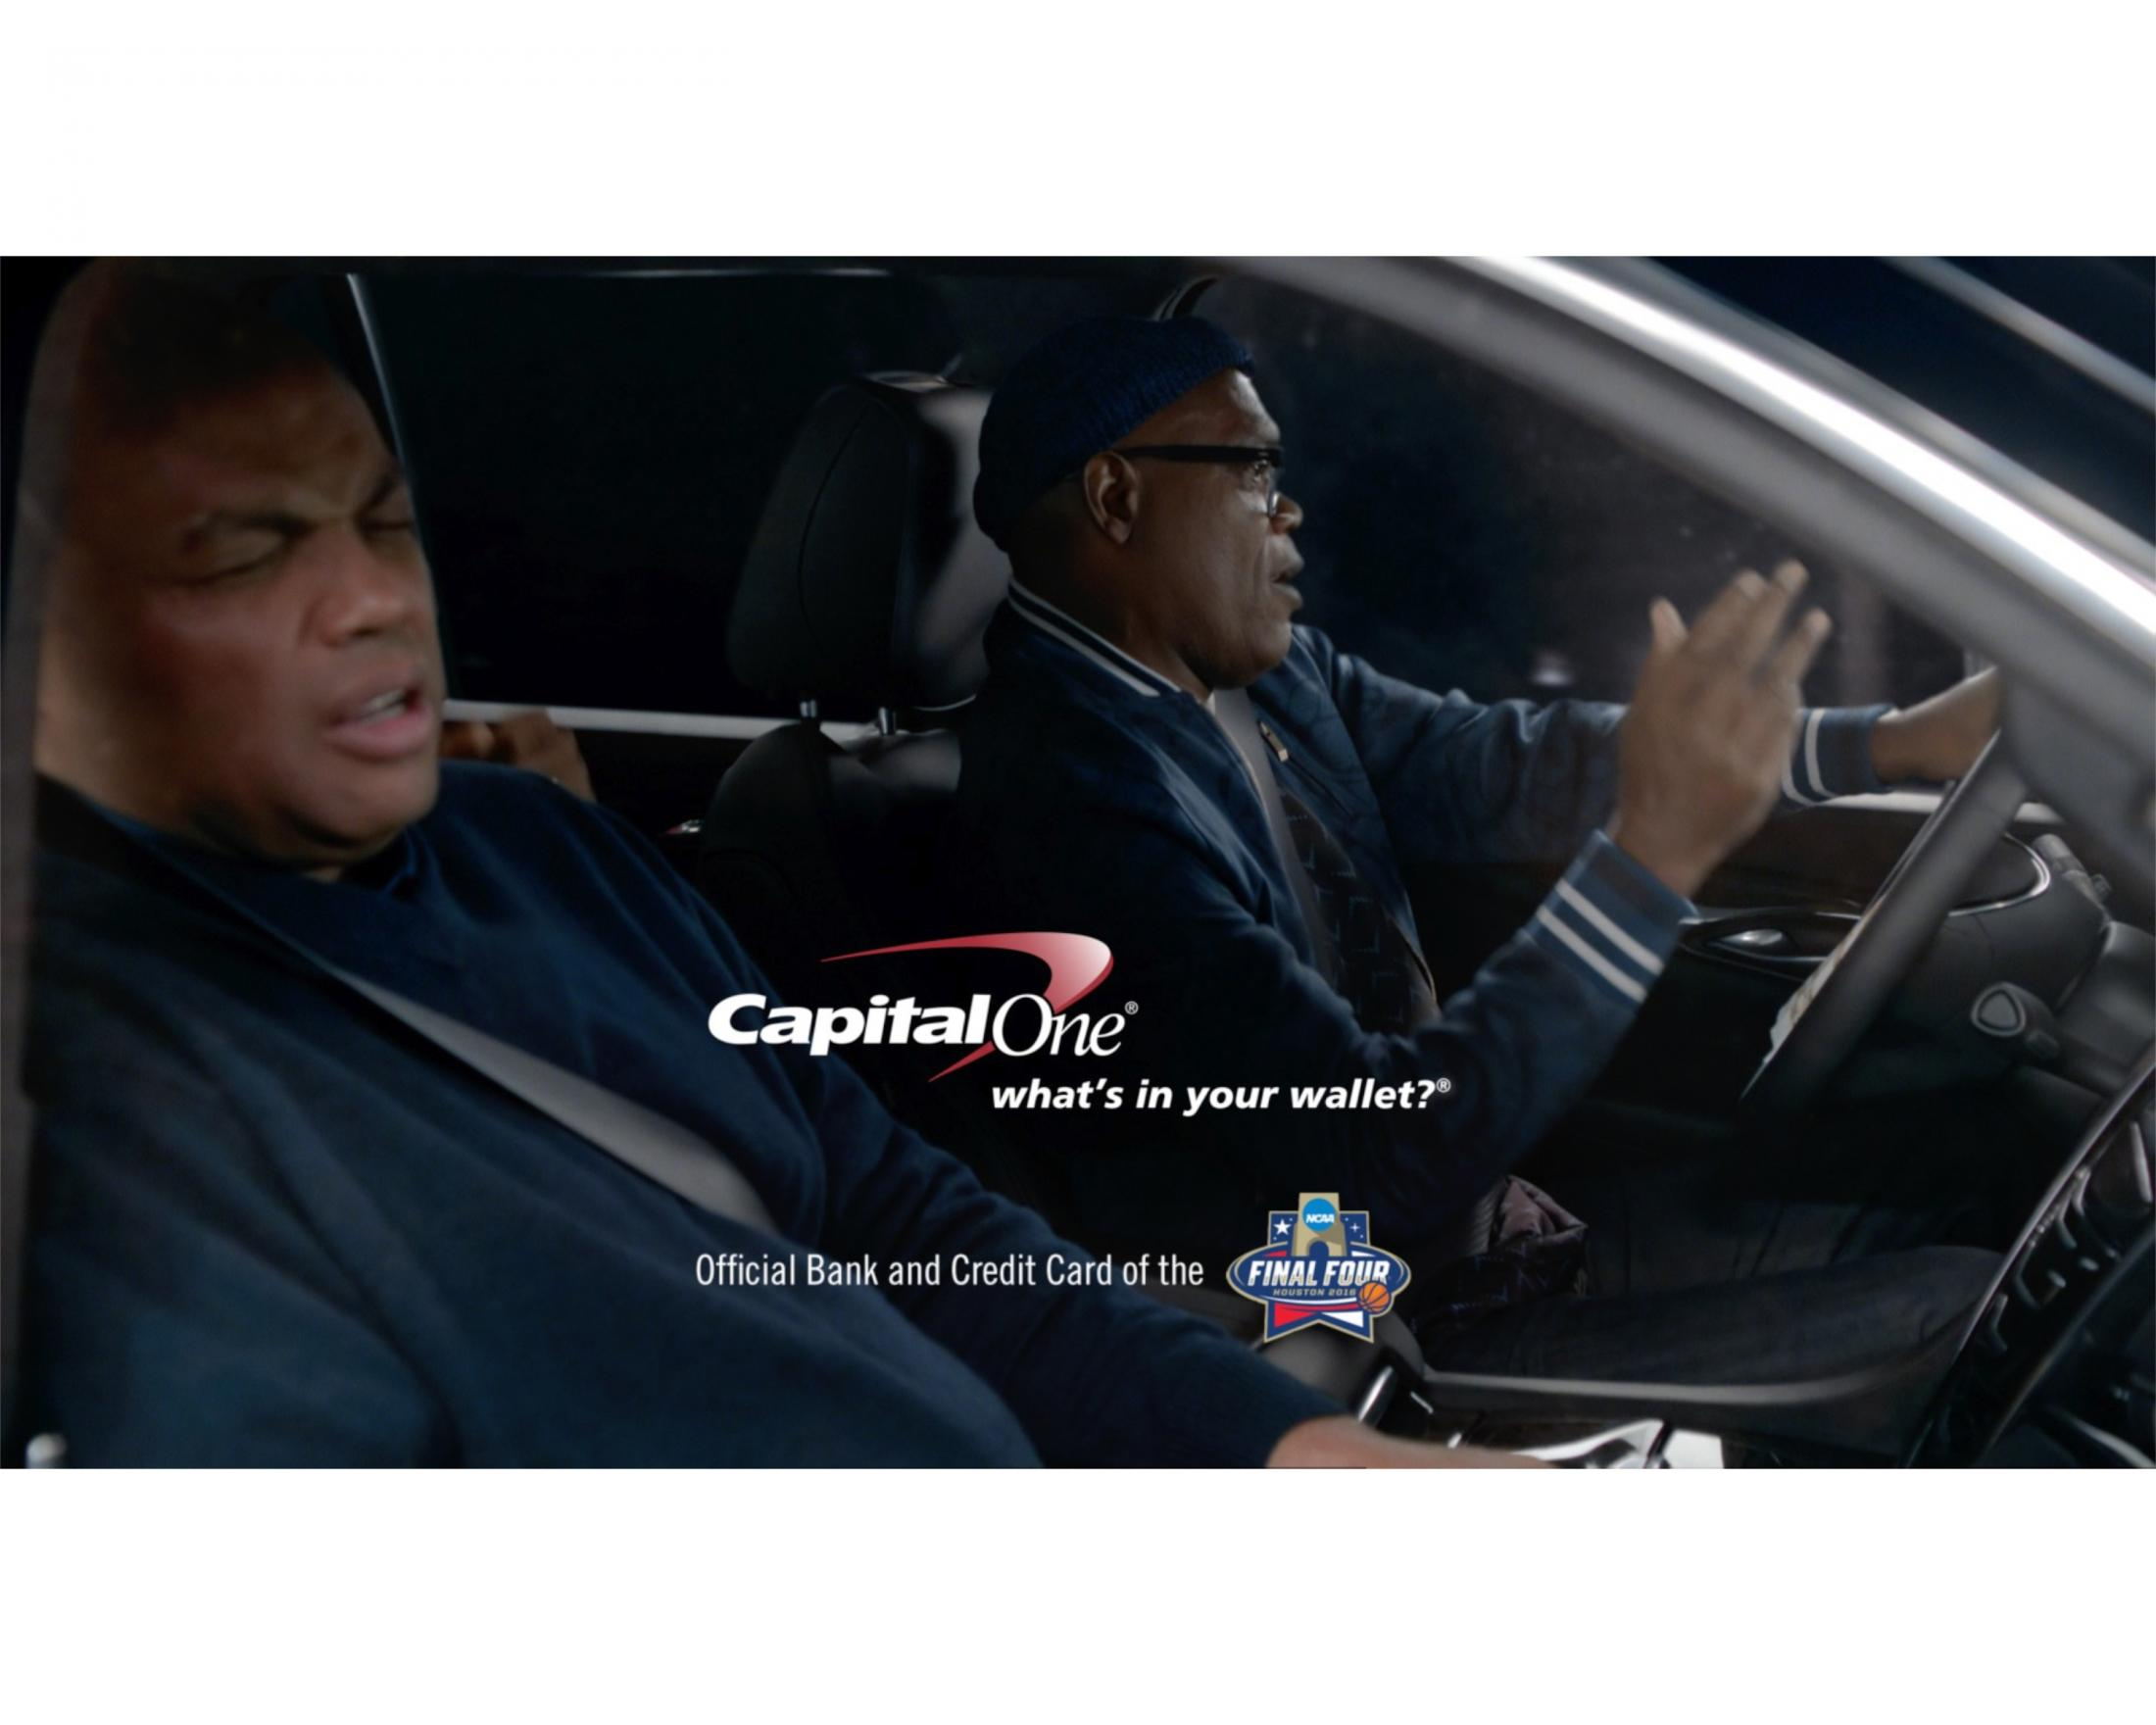 Thumbnail for Capital One's NCAA 2016 March Madness Sponsorship